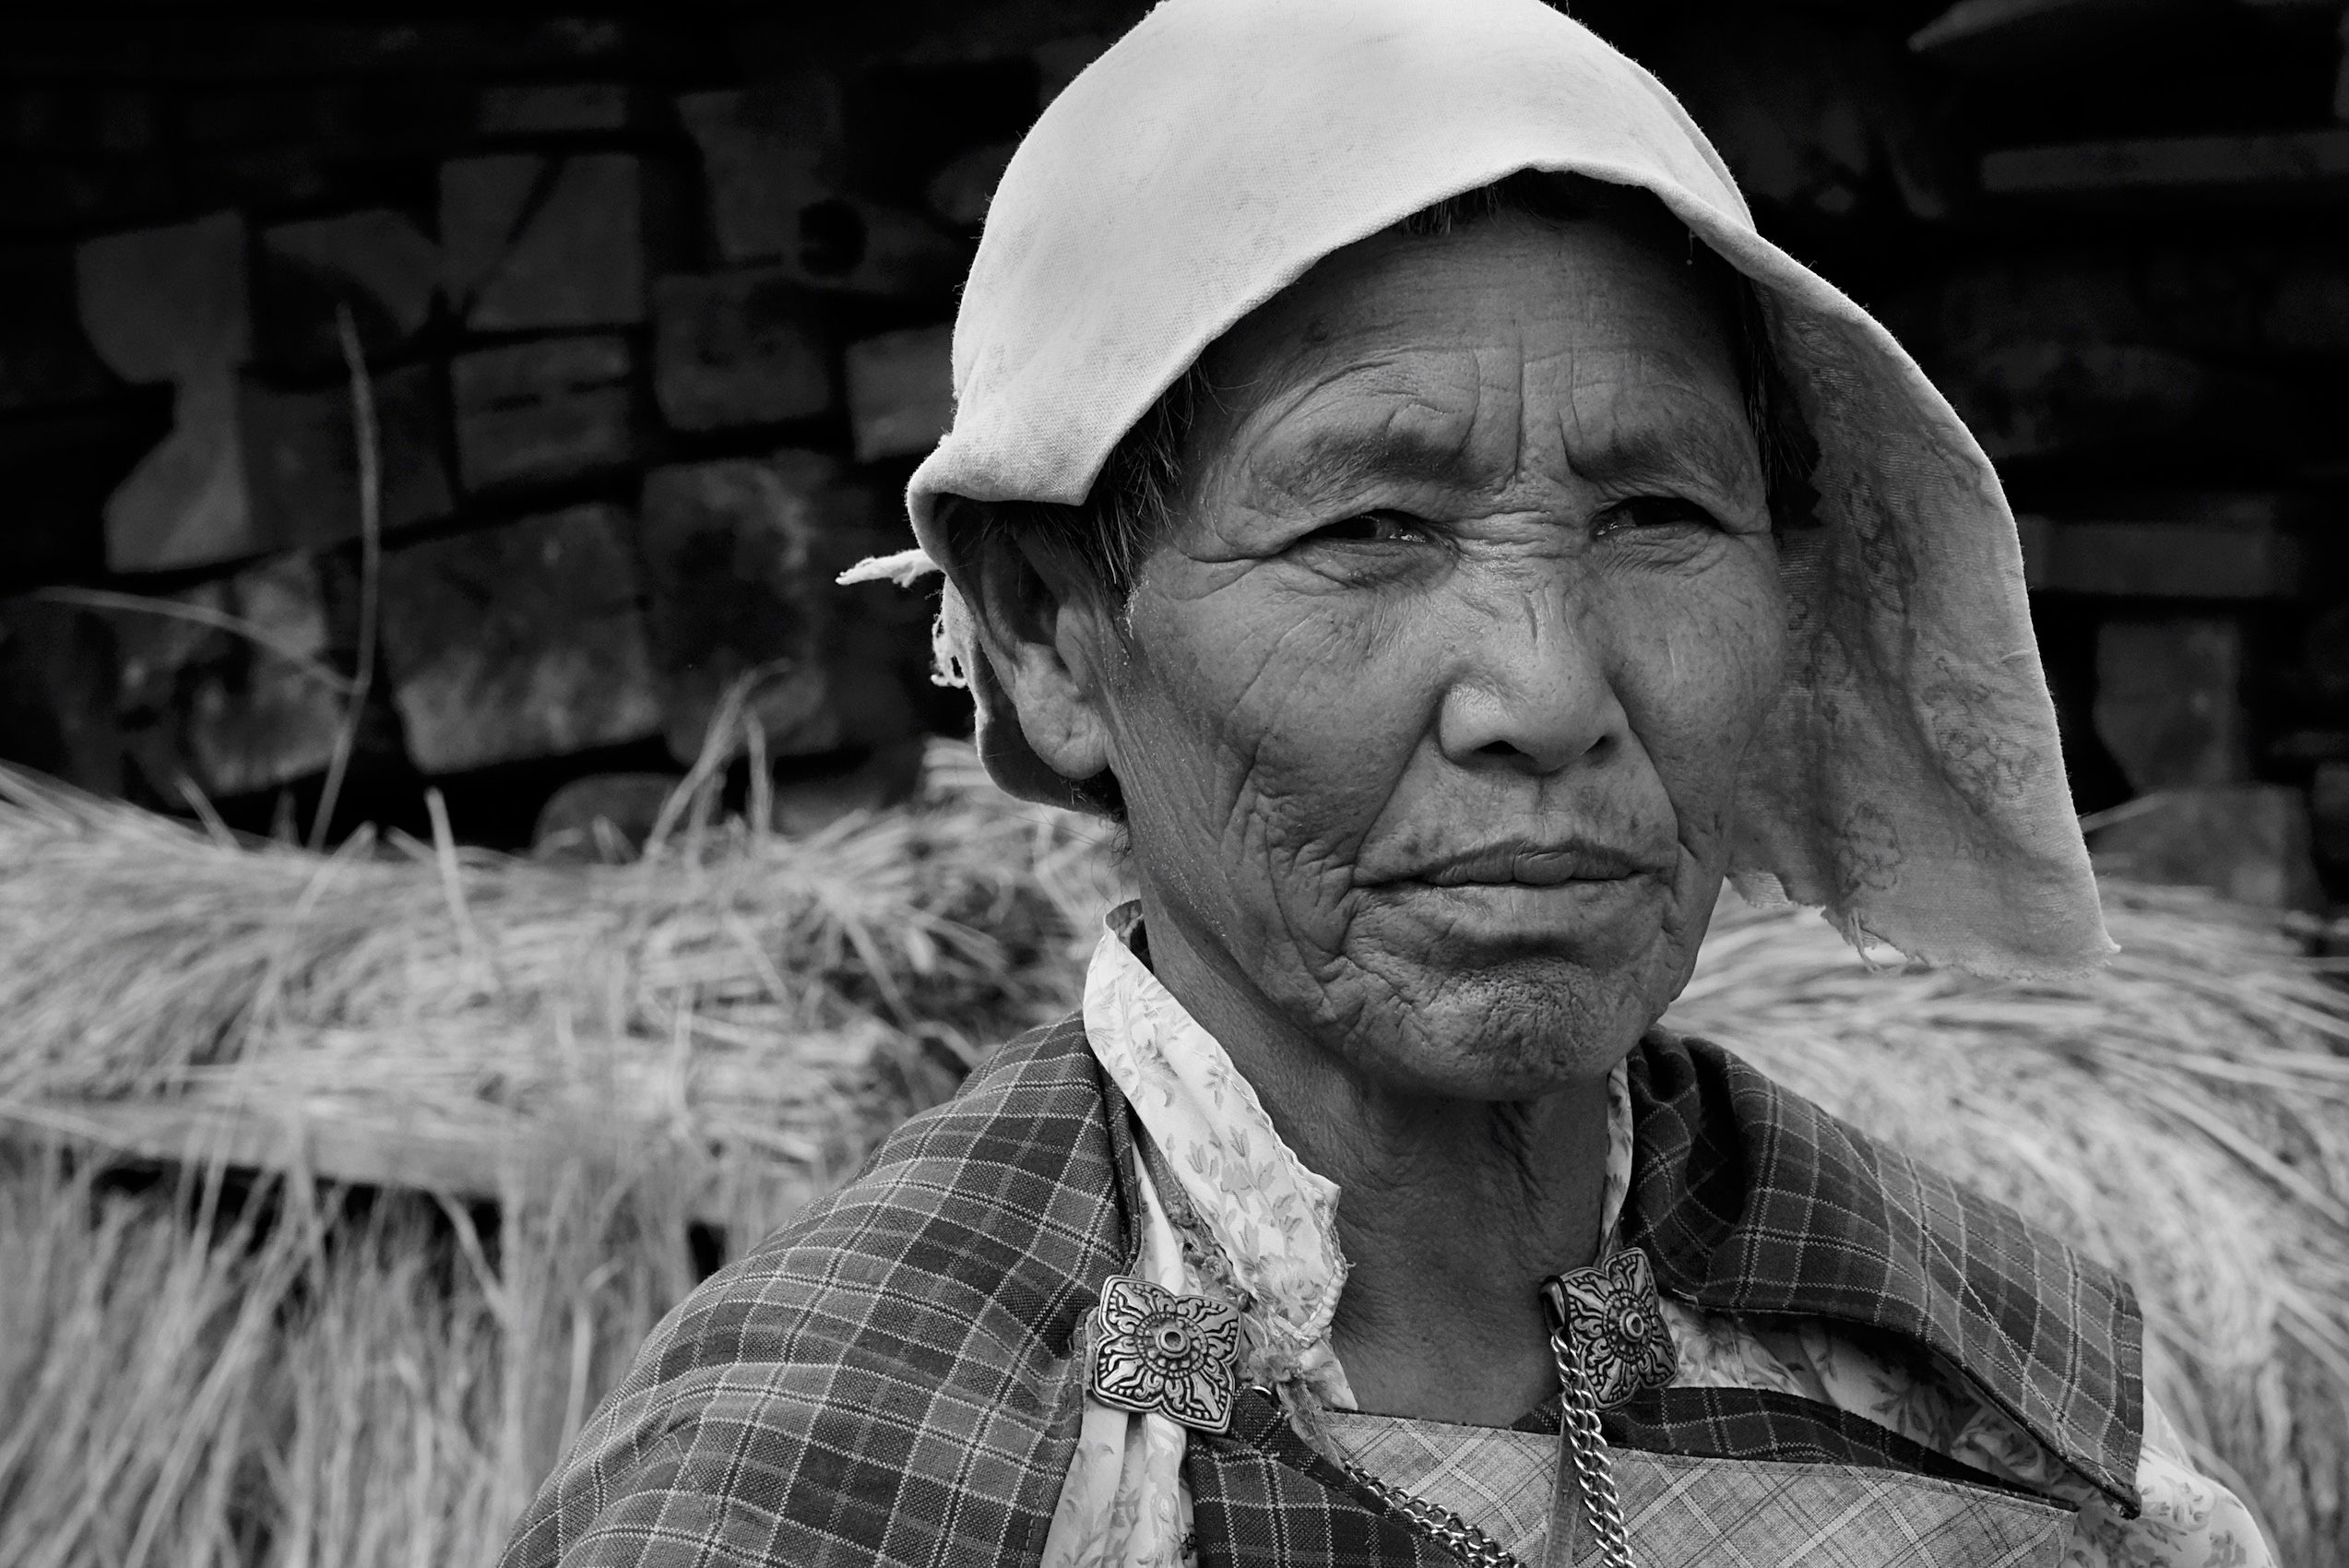 Bhutan woman in the village